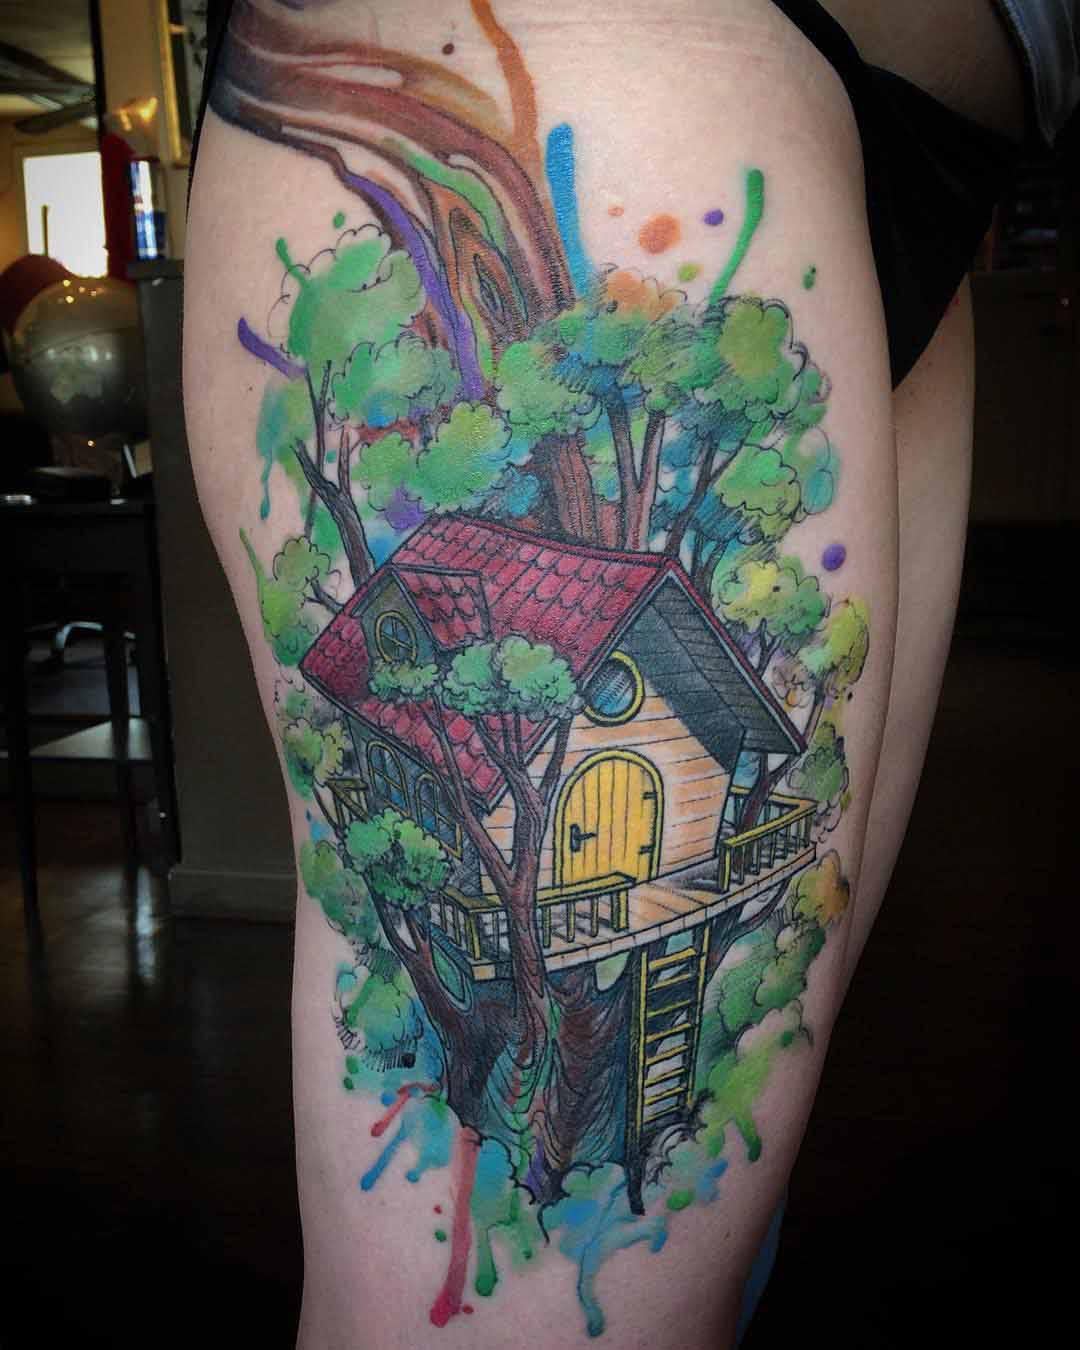 thigh tattoo tree house watercolor style